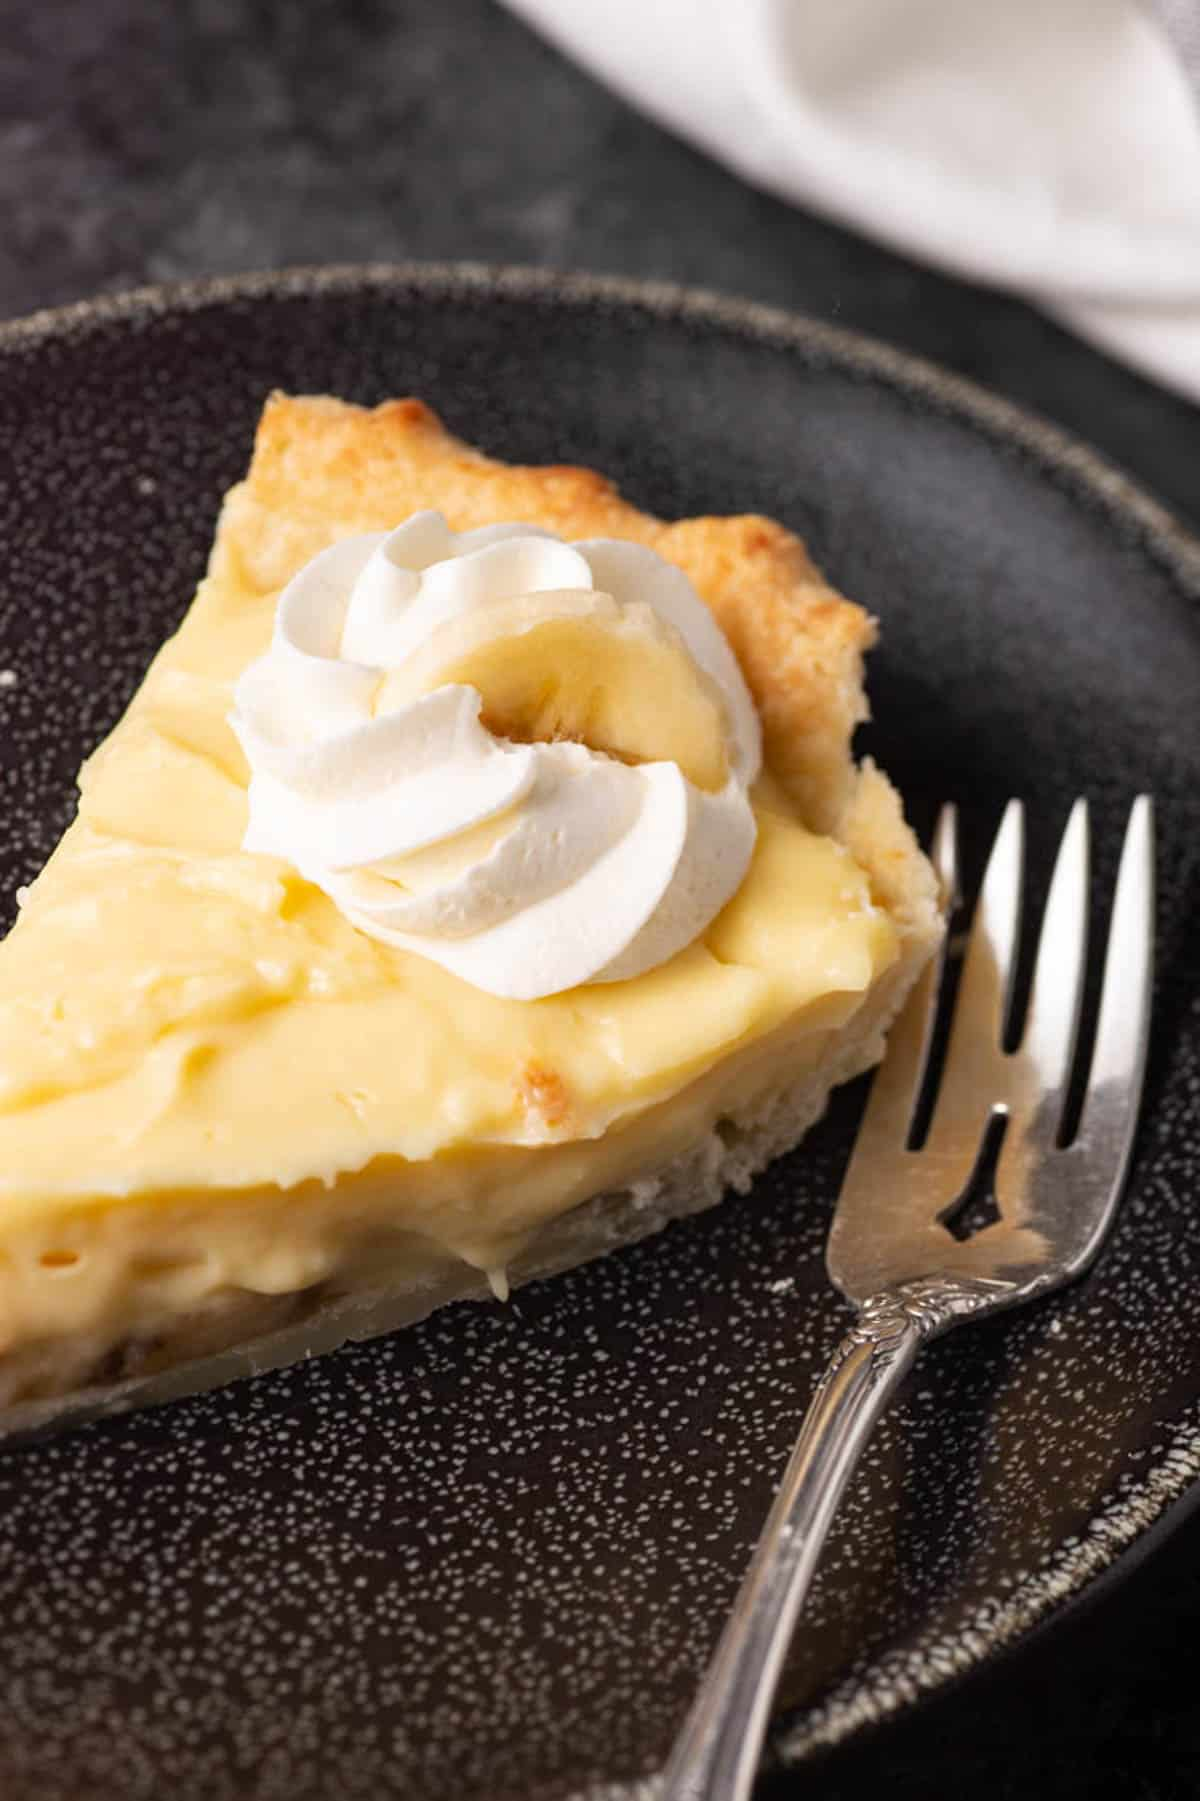 A slice of banana cream pie with whipped cream on top.